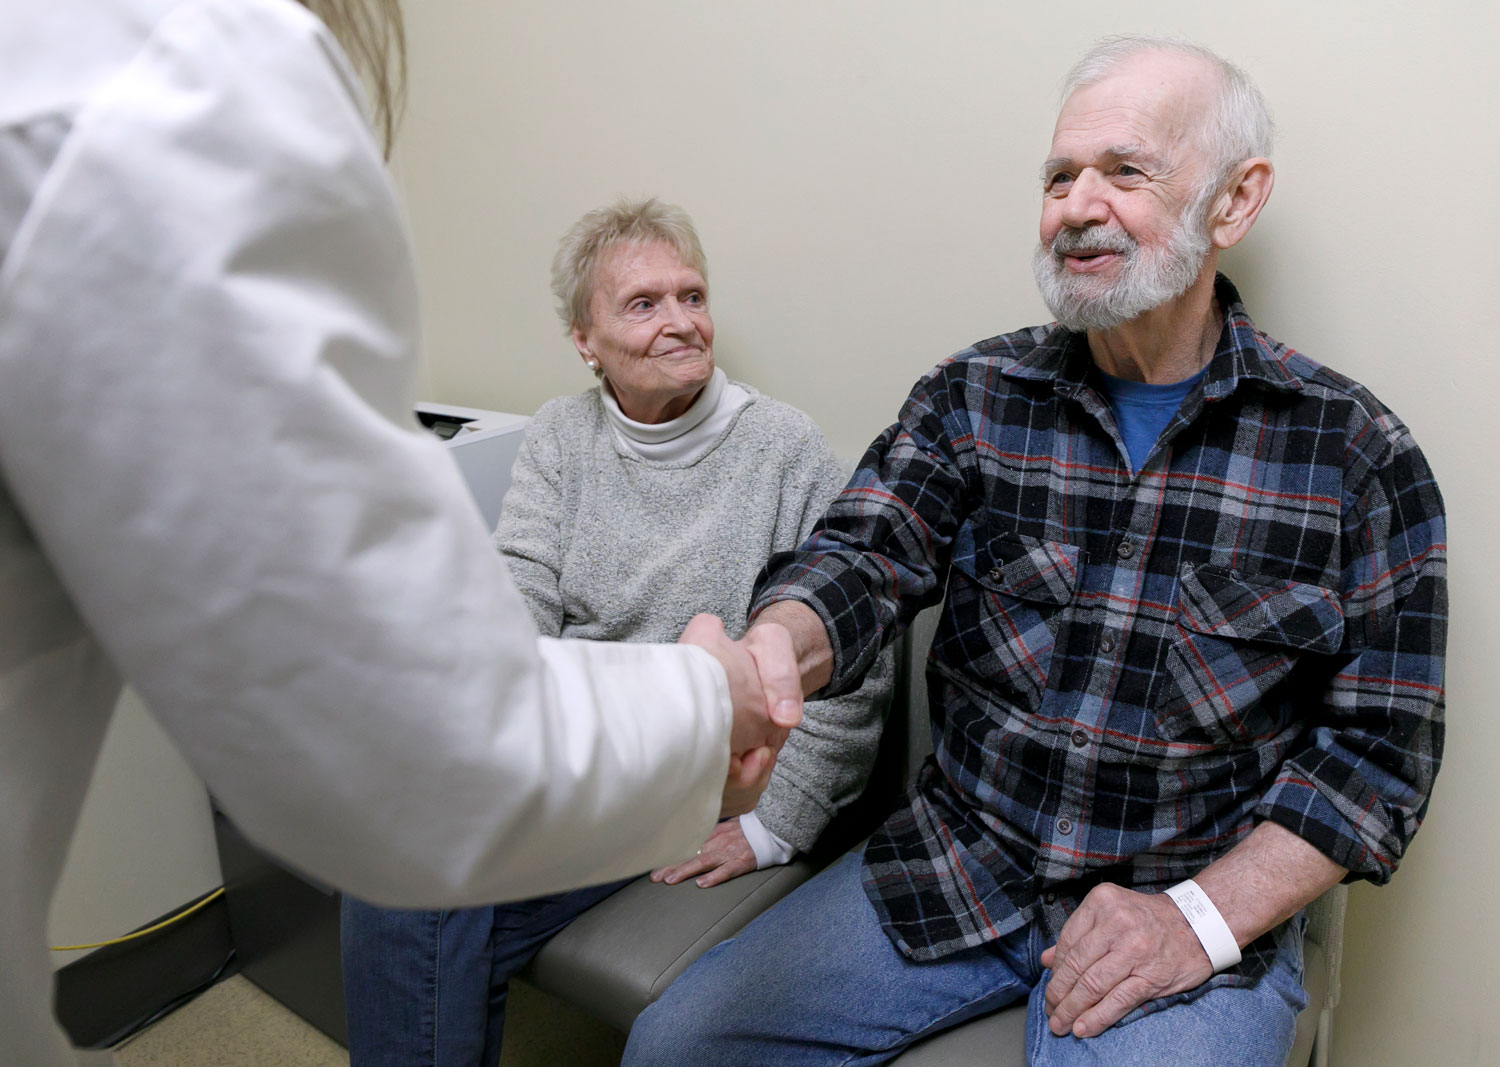 Dennis Eggers shakes hands with his doctor